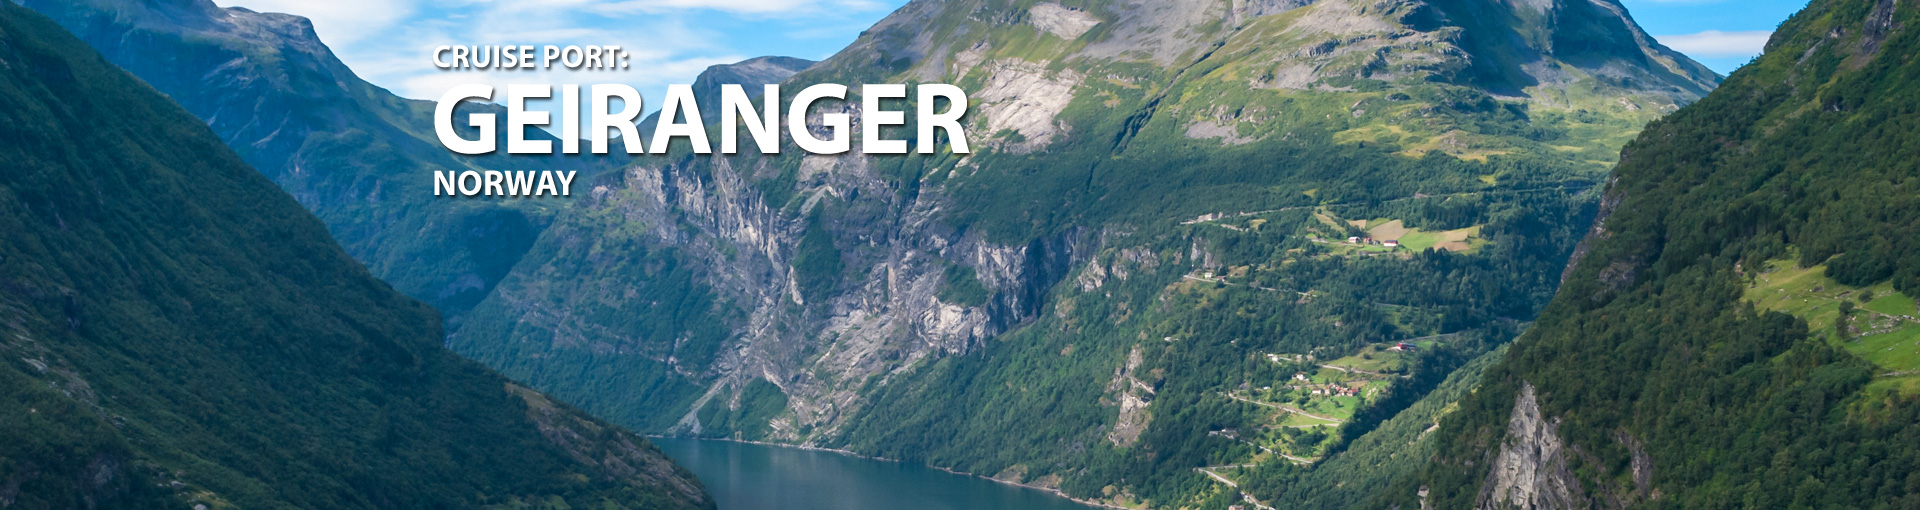 Cruises to Geiranger, Norway